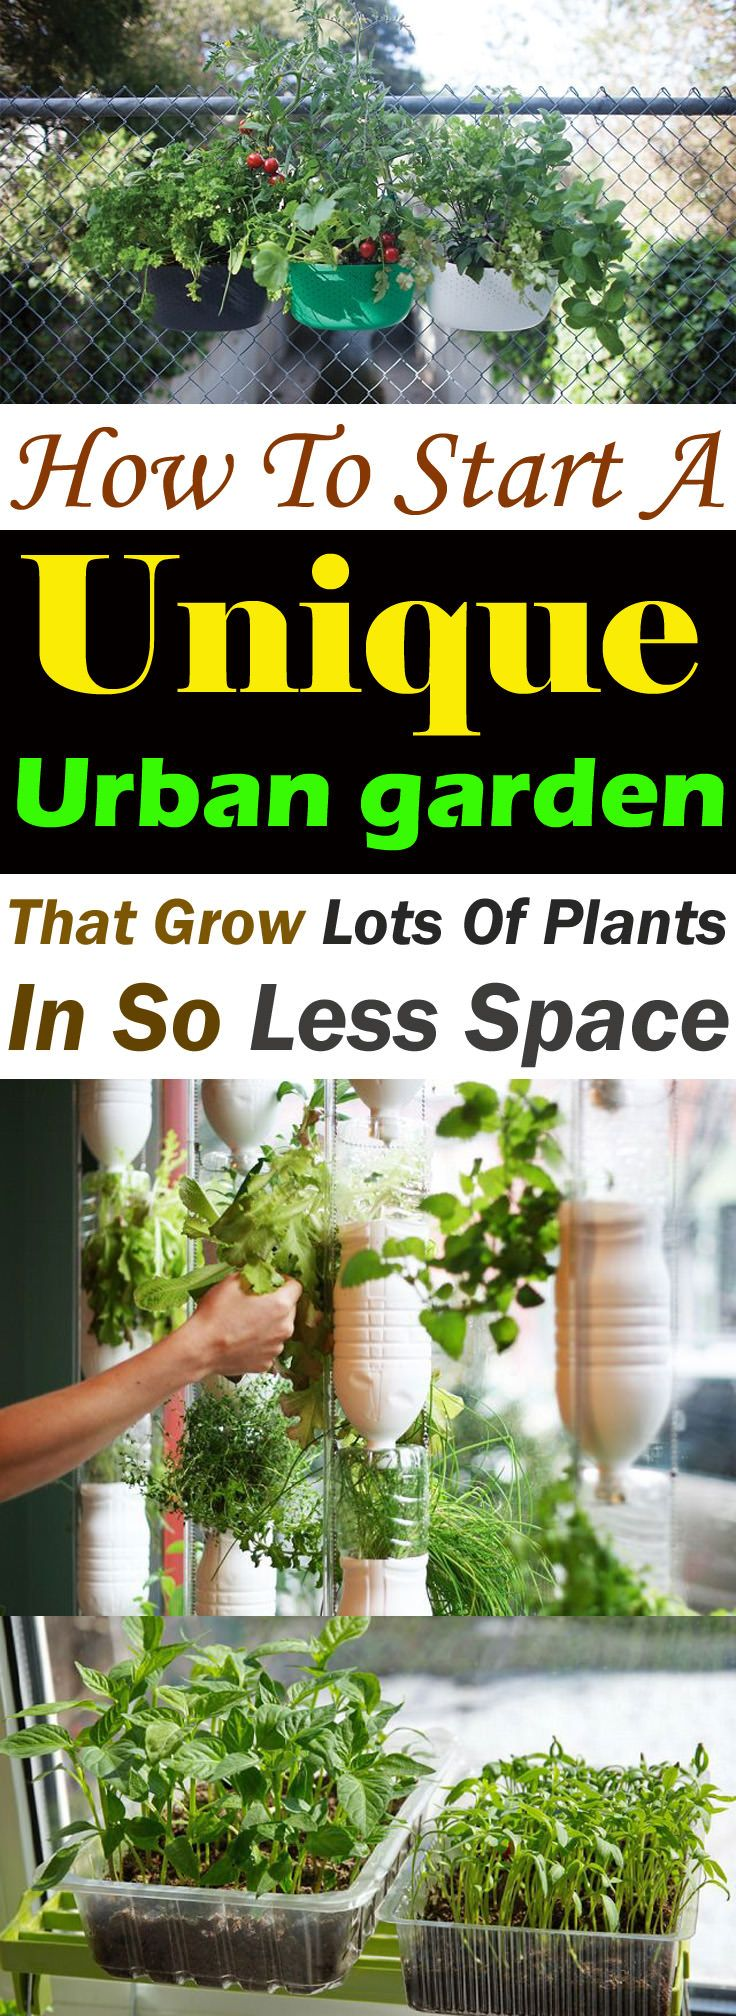 How To Start A Unique Urban Garden To Grow Lots Of Plants In So Less Space